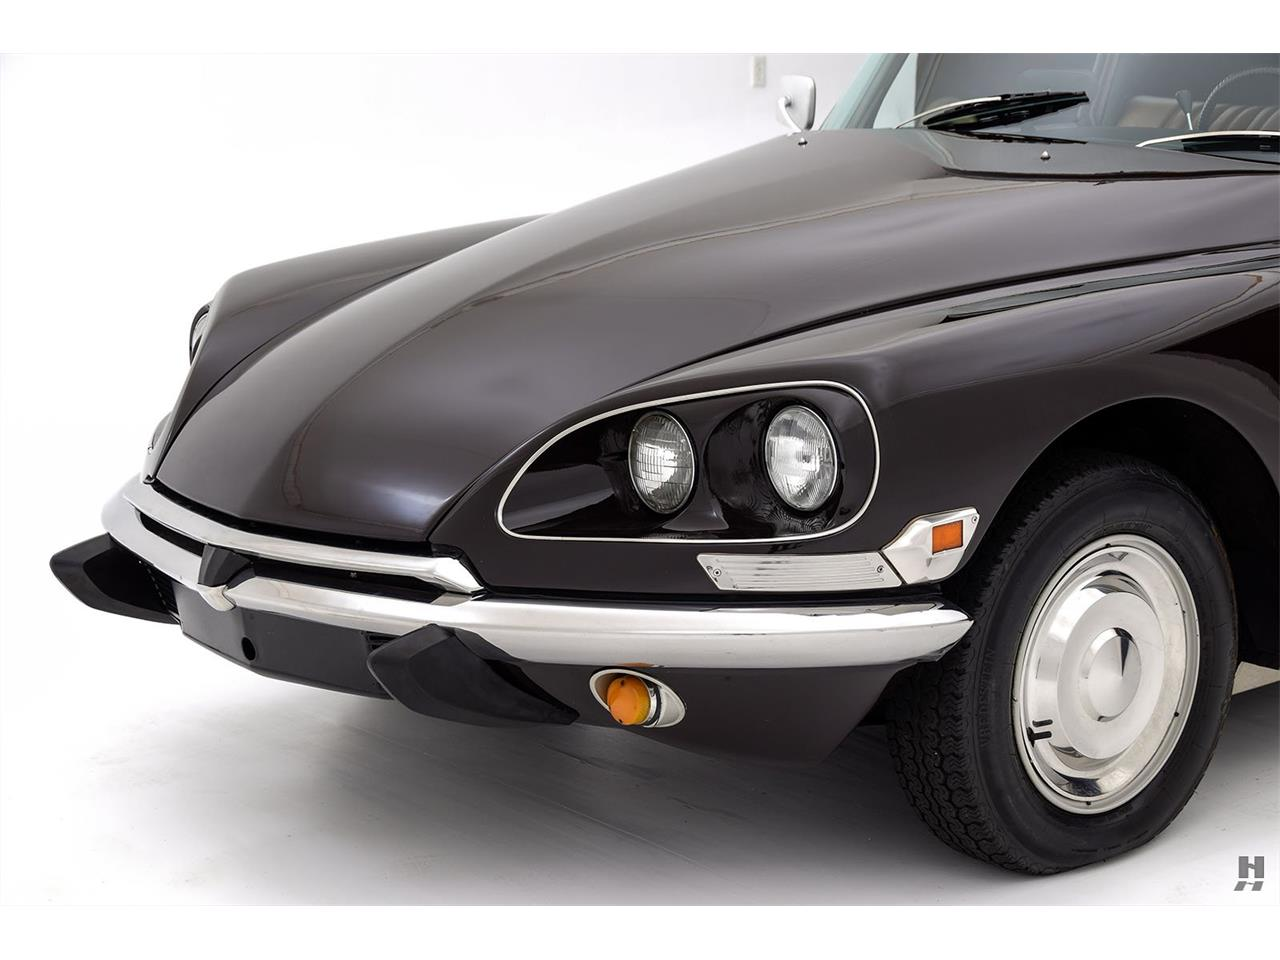 Large Picture of '69 DS21 Pallas Offered by Hyman Ltd. Classic Cars - OVD1